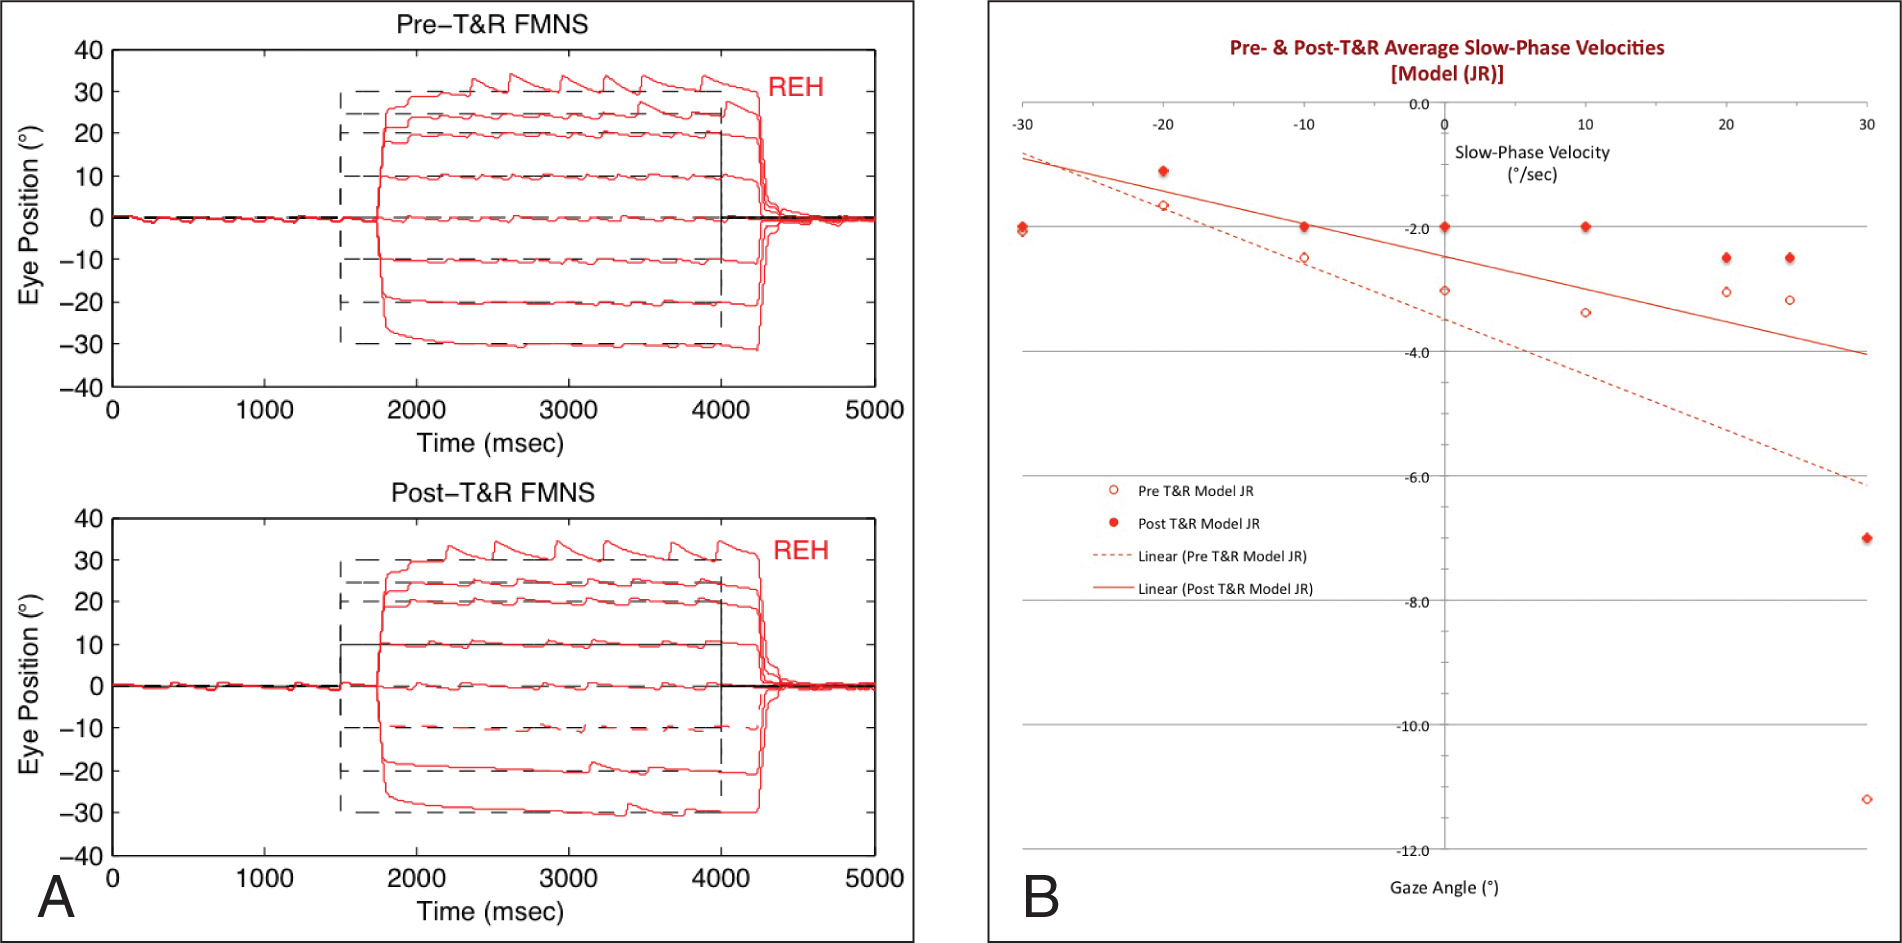 Simulation of preoperative and postoperative tenotomy and reattachment (T & R) effects on right-beating (ie, right-eye fixation) fusion maldevelopment nystagmus syndrome (FMNS). (A) Pre-tenotomy and reattachment FMN showing the Alexander's law increases in abduction and the transition from jerk nystagmus to saccadic pulses at 24.5°. Postoperative tenotomy and reattachment: the model predicted a lowering of nystagmus amplitudes and frequencies and broadening of low-amplitude range of gaze angles. (B) Postoperative tenotomy and reattachment improvement of average slow-phase velocities. The high preoperative and postoperative tenotomy and reattachment non-linear velocities for the saccadic pulses in far abduction are not included. Dashed lines are target positions.